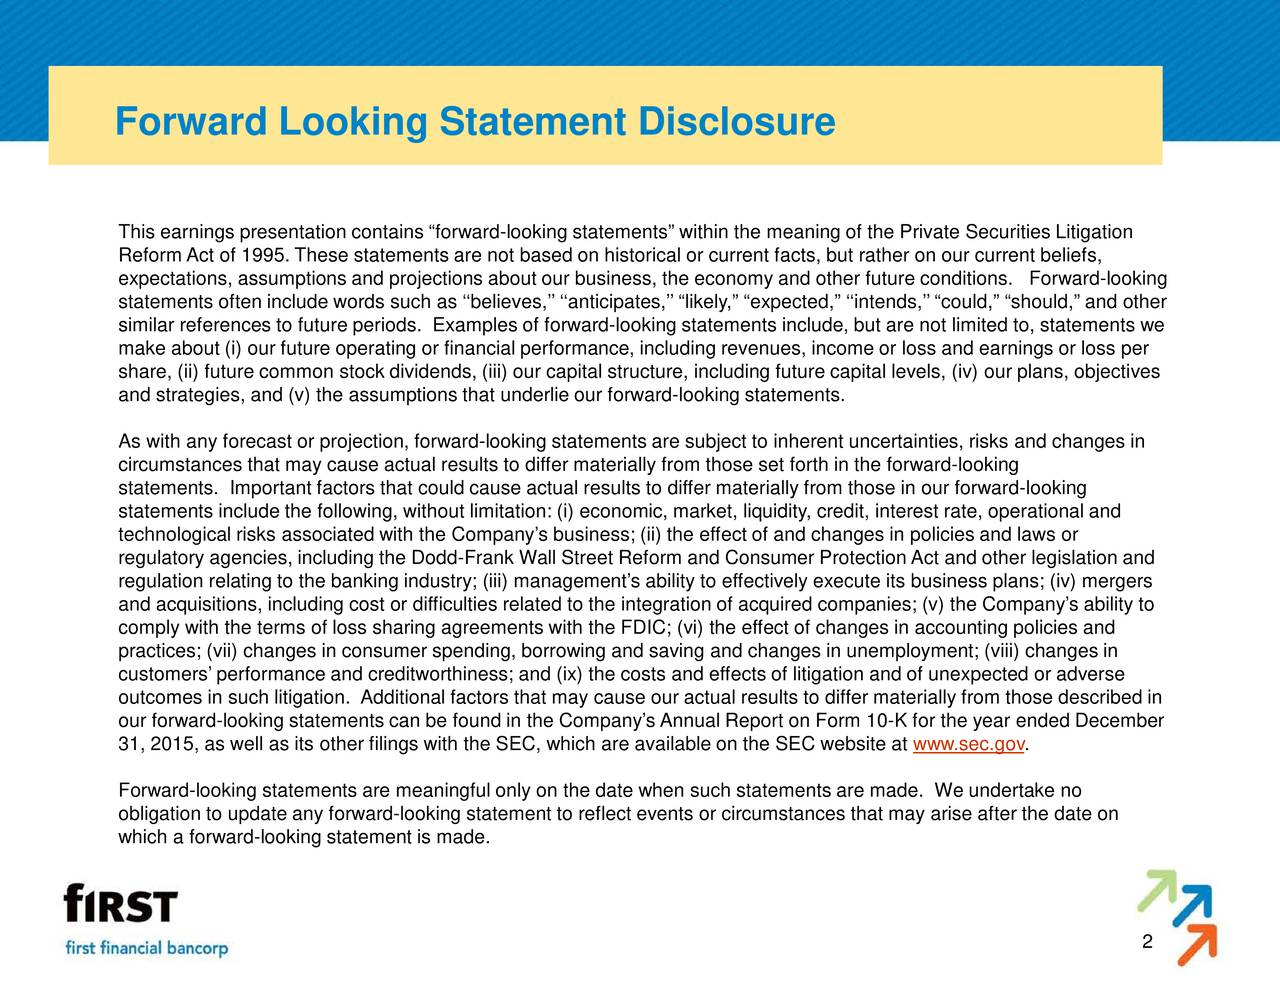 This earnings presentation contains forward-looking statements within the meaning of the Private Securities Litigation Reform Act of 1995. These statements are not based on historical or current facts, but rather on our current beliefs, expectations, assumptions and projections about our business, the economy and other future conditions. Forward-looking statements often include words such as believes, anticipates, likely, expected, intends, could, should, and other similar references to future periods. Examples of forward-looking statements include, but are not limited to, statements we make about (i) our future operating or financial performance, including revenues, income or loss and earnings or loss per share, (ii) future common stock dividends, (iii) our capital structure, including future capital levels, (iv) our plans, objectives and strategies, and (v) the assumptions that underlie our forward-looking statements. As with any forecast or projection, forward-looking statements are subject to inherent uncertainties, risks and changes in circumstances that may cause actual results to differ materially from those set forth in the forward-looking statements. Important factors that could cause actual results to differ materially from those in our forward-looking statements include the following, without limitation: (i) economic, market, liquidity, credit, interest rate, operational and technological risks associated with the Companys business; (ii) the effect of and changes in policies and laws or regulatory agencies, including the Dodd-Frank Wall Street Reform and Consumer Protection Act and other legislation and regulation relating to the banking industry; (iii) managements ability to effectively execute its business plans; (iv) mergers and acquisitions, including cost or difficulties related to the integration of acquired companies; (v) the Companys ability to comply with the terms of loss sharing agreements with the FDIC; (vi) the effect of changes in accounting